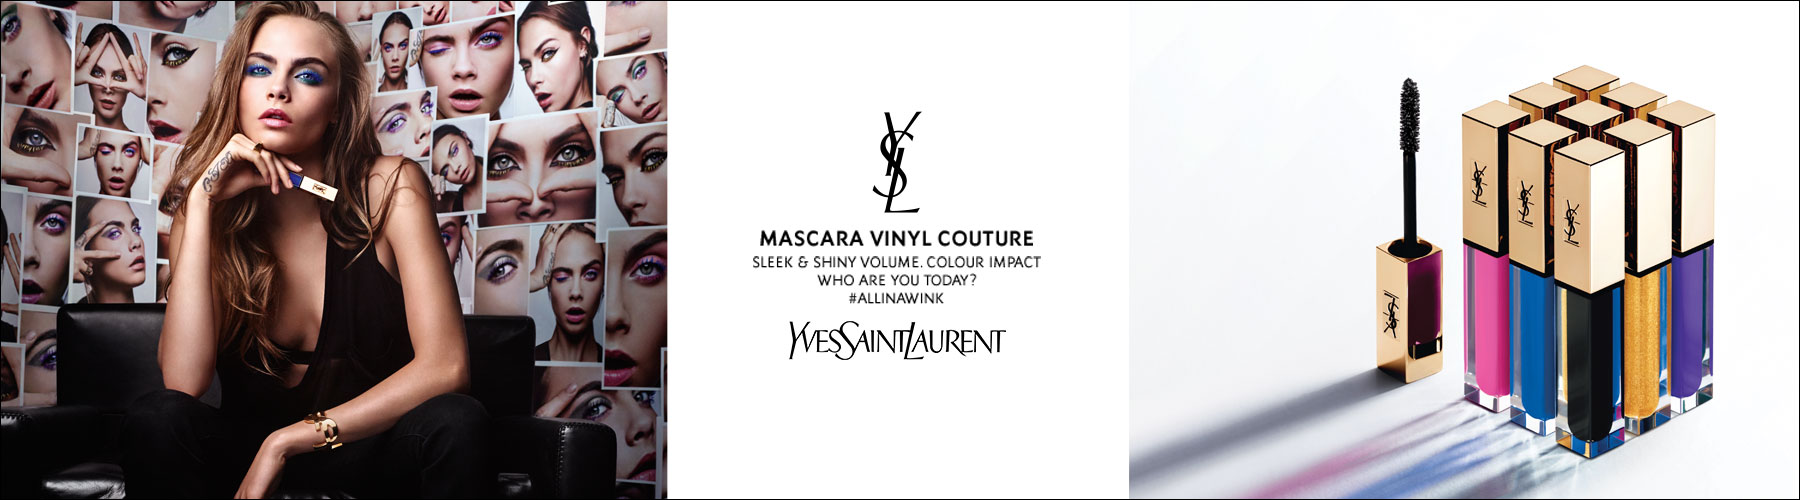 Yves Saint Laurent: Mascara Vinyl Couture - Sleek & Shiny Volume Colour Impact